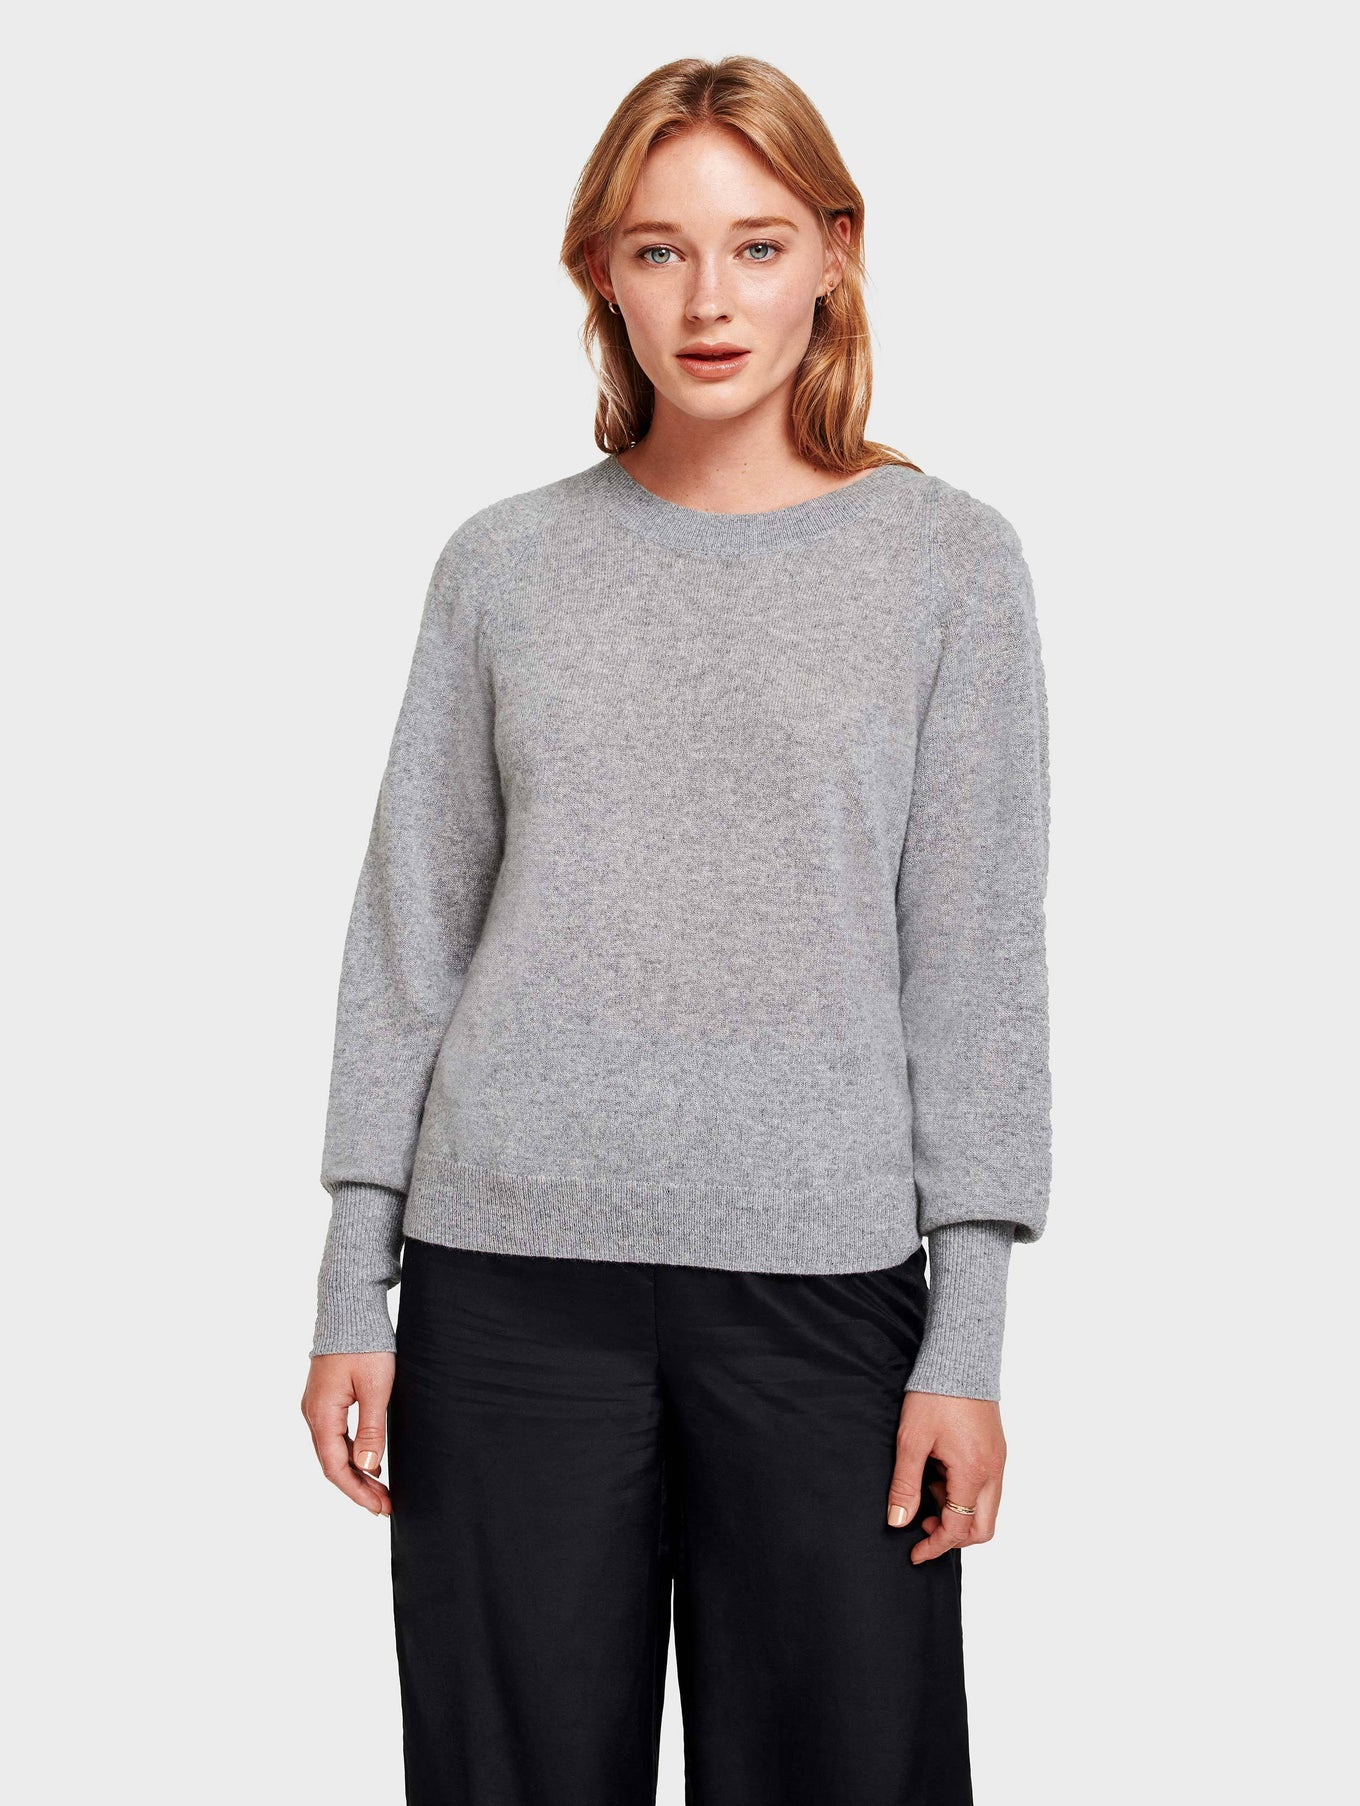 Cashmere Blouson Sleeve Crewneck - Grey Heather - Image 1